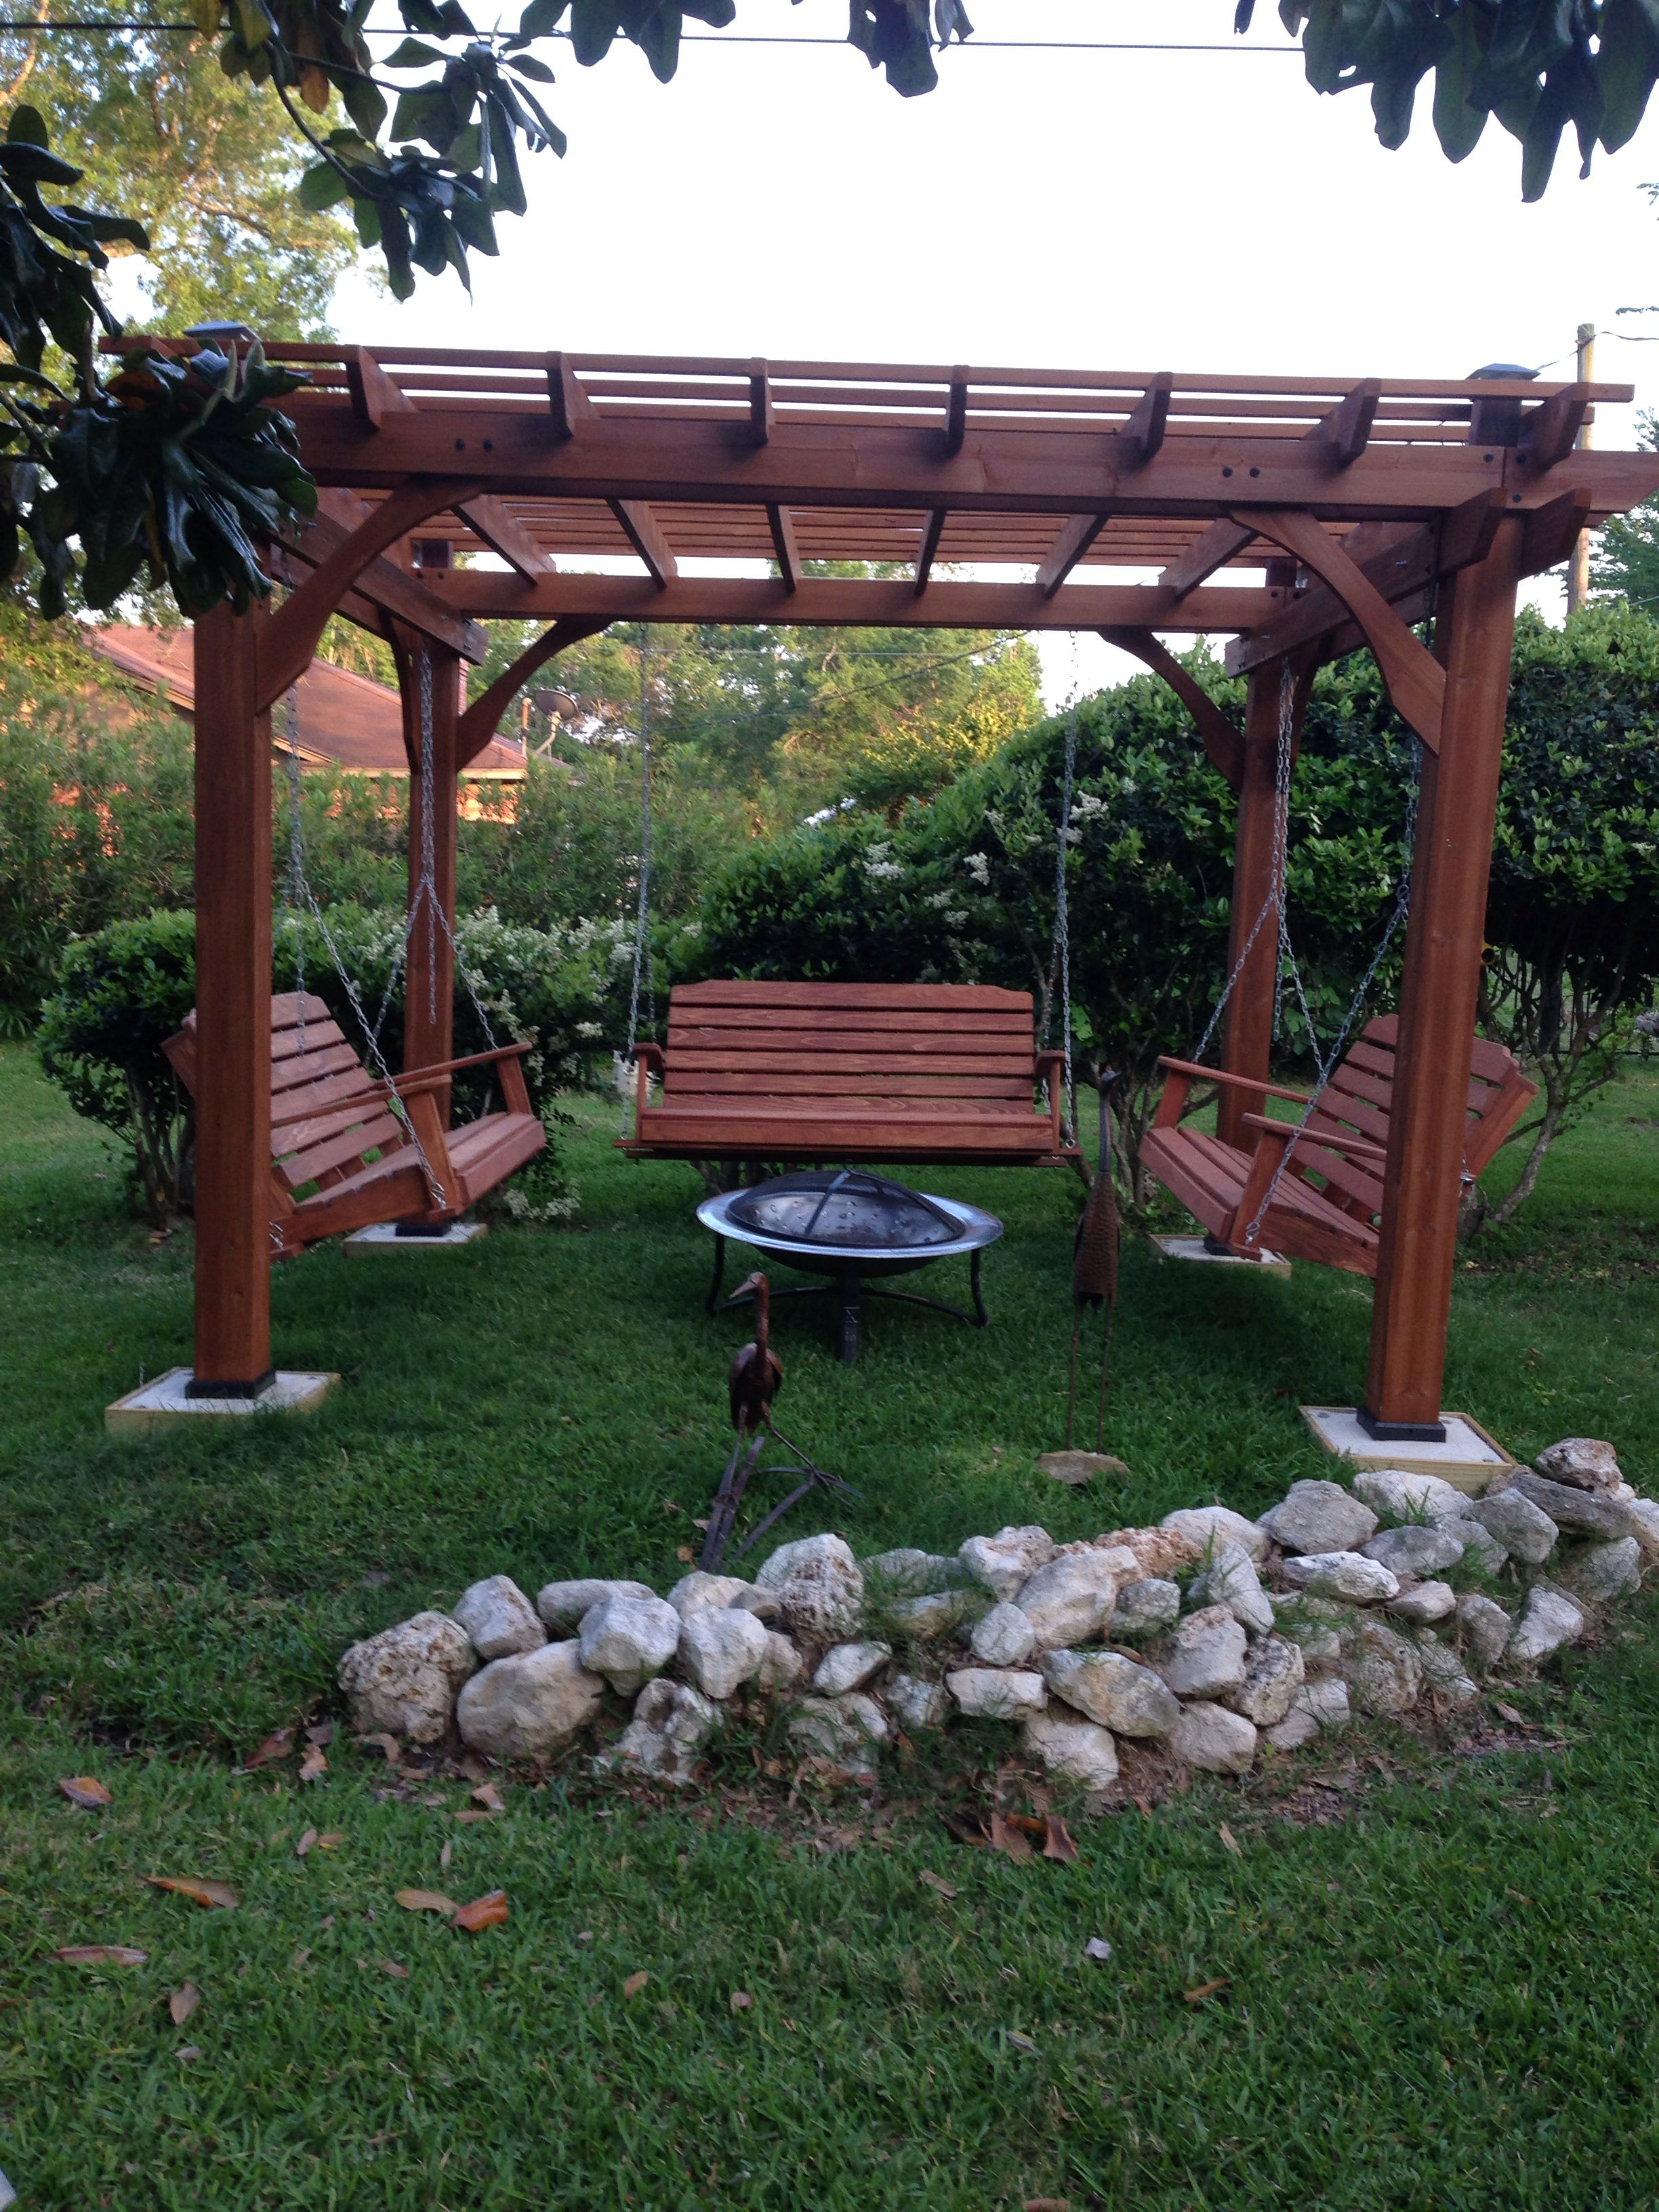 Great outdoor area with pergola swings and fire pit patio